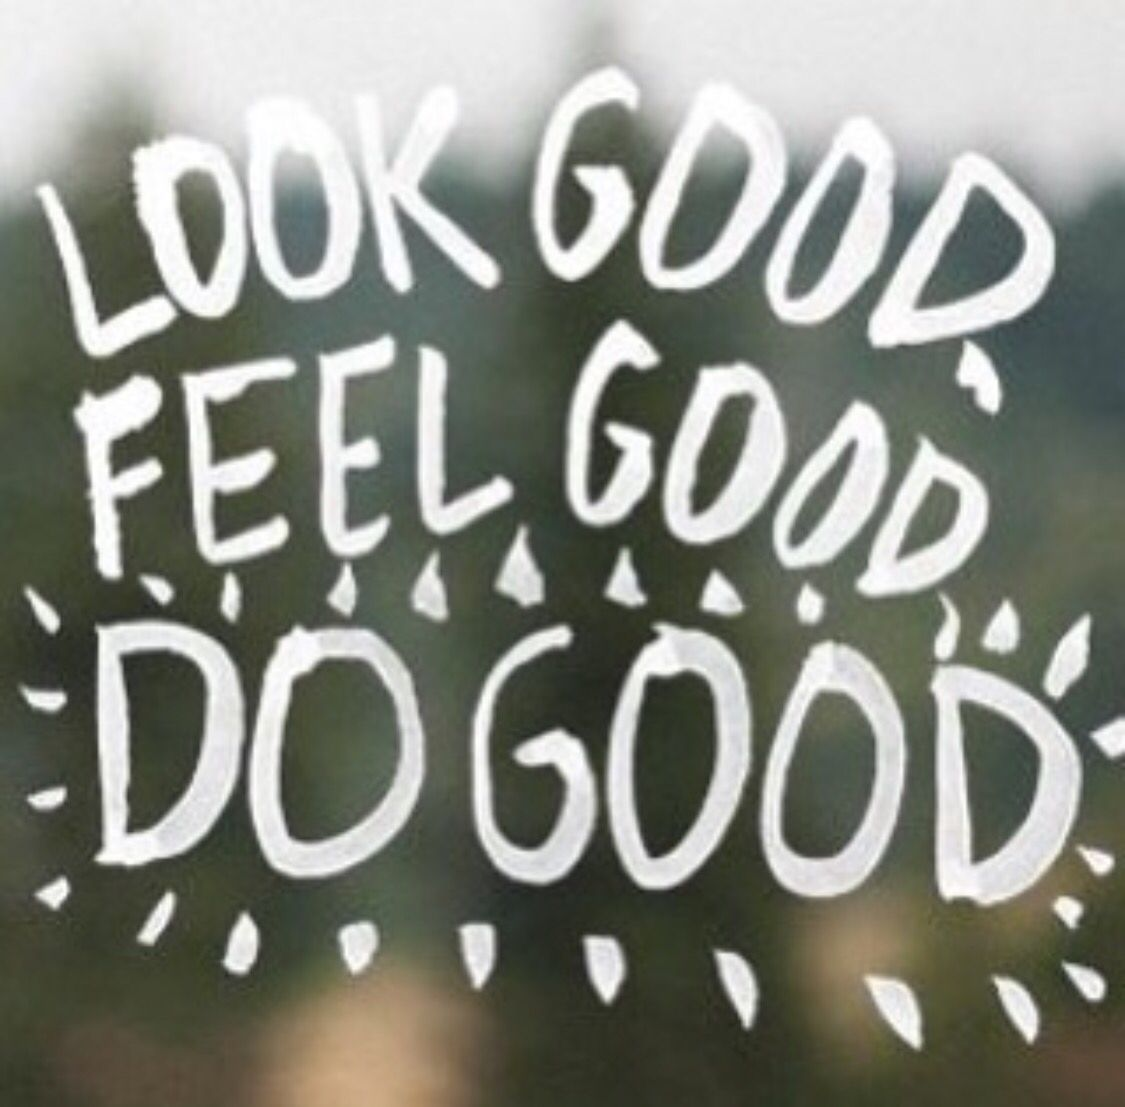 Look Good Feel Good Do Good Mantra Motto Inspiration Fashion